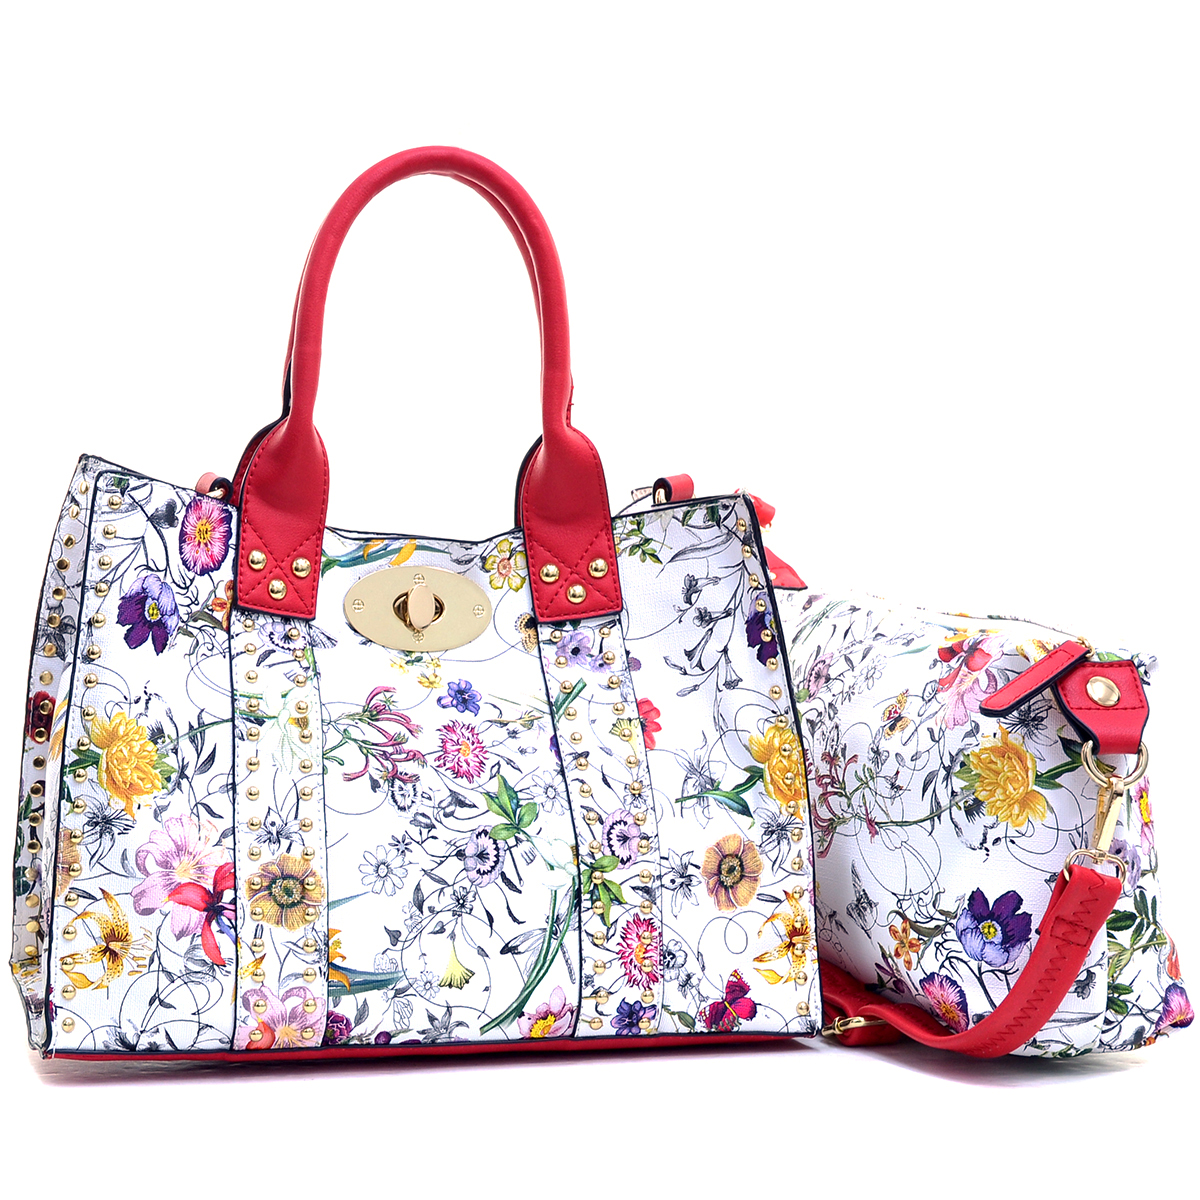 Floral Print Faux Leather Studded 2-in-1 Tote Bag